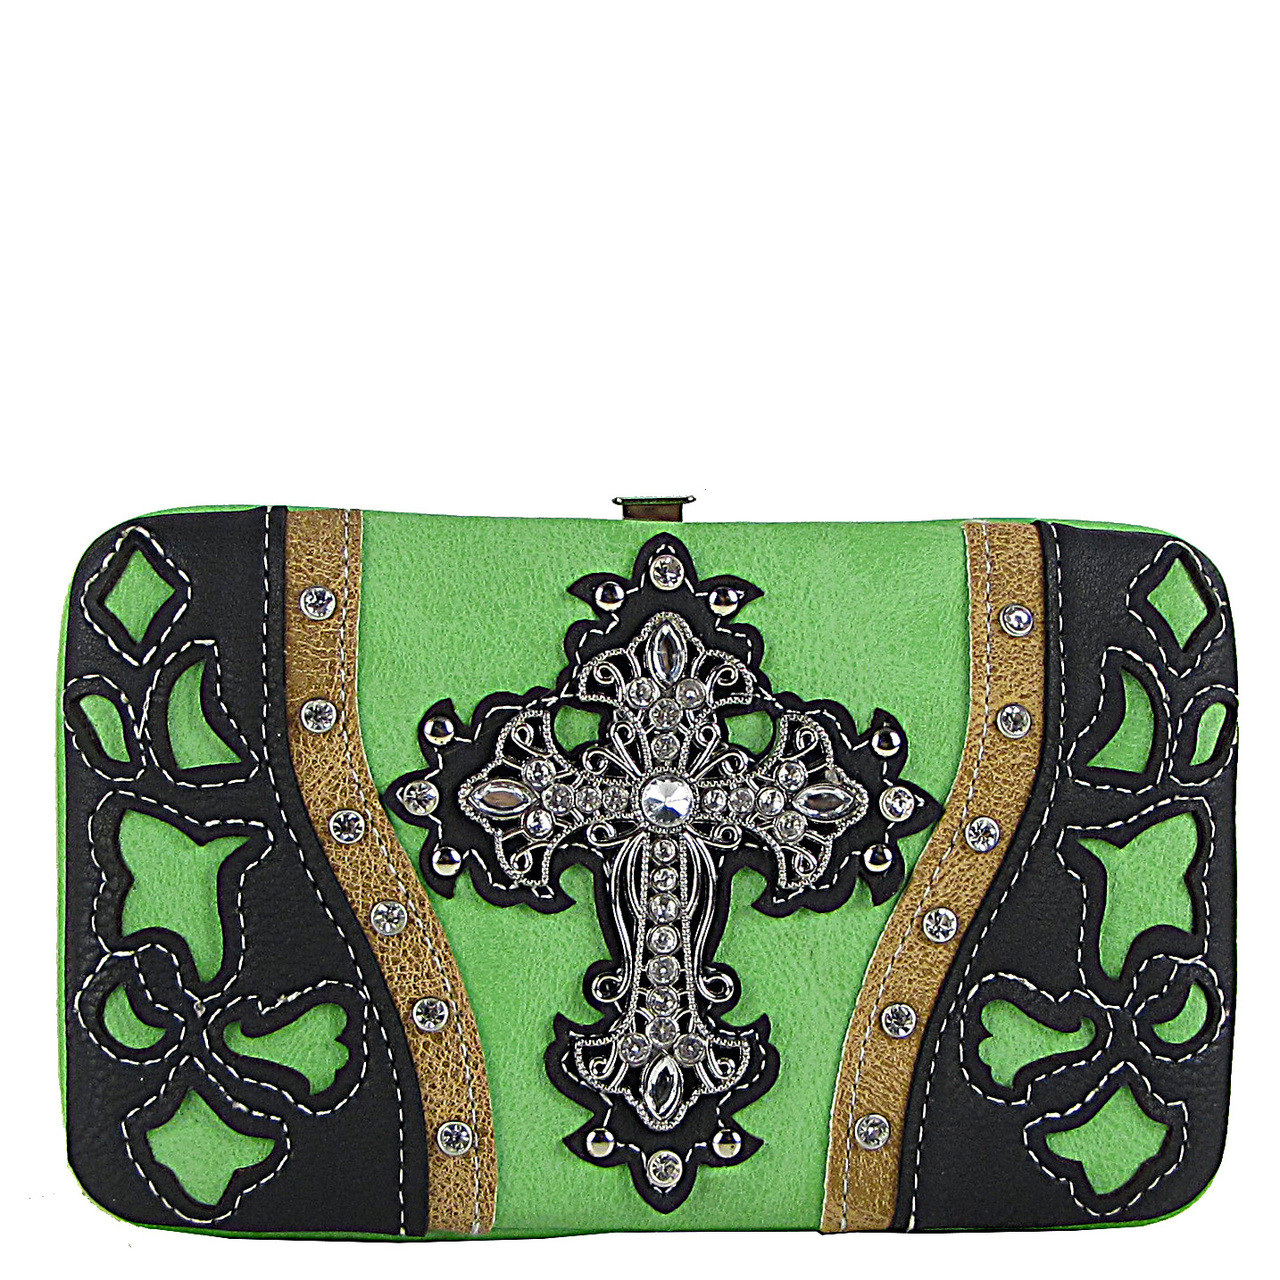 GREEN WESTERN LASER CUT CROSS DESIGN FLAT THICK WALLET FW2-0401GRN